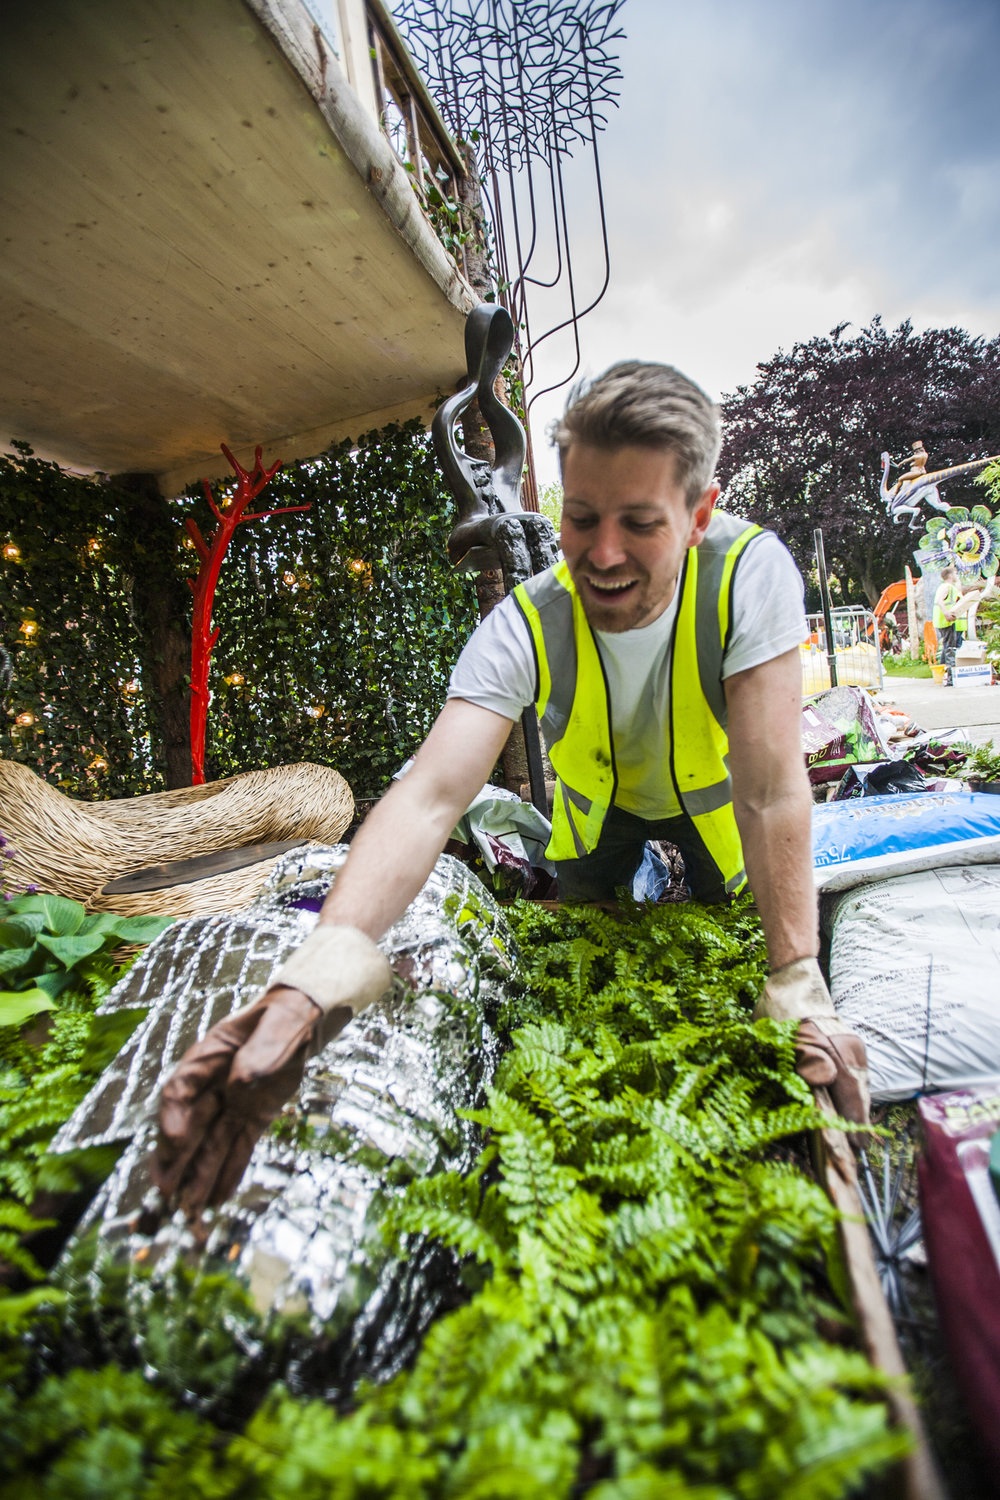 Oliver, rather atypically, getting his hands dirty at the Chelsea Flower Show.